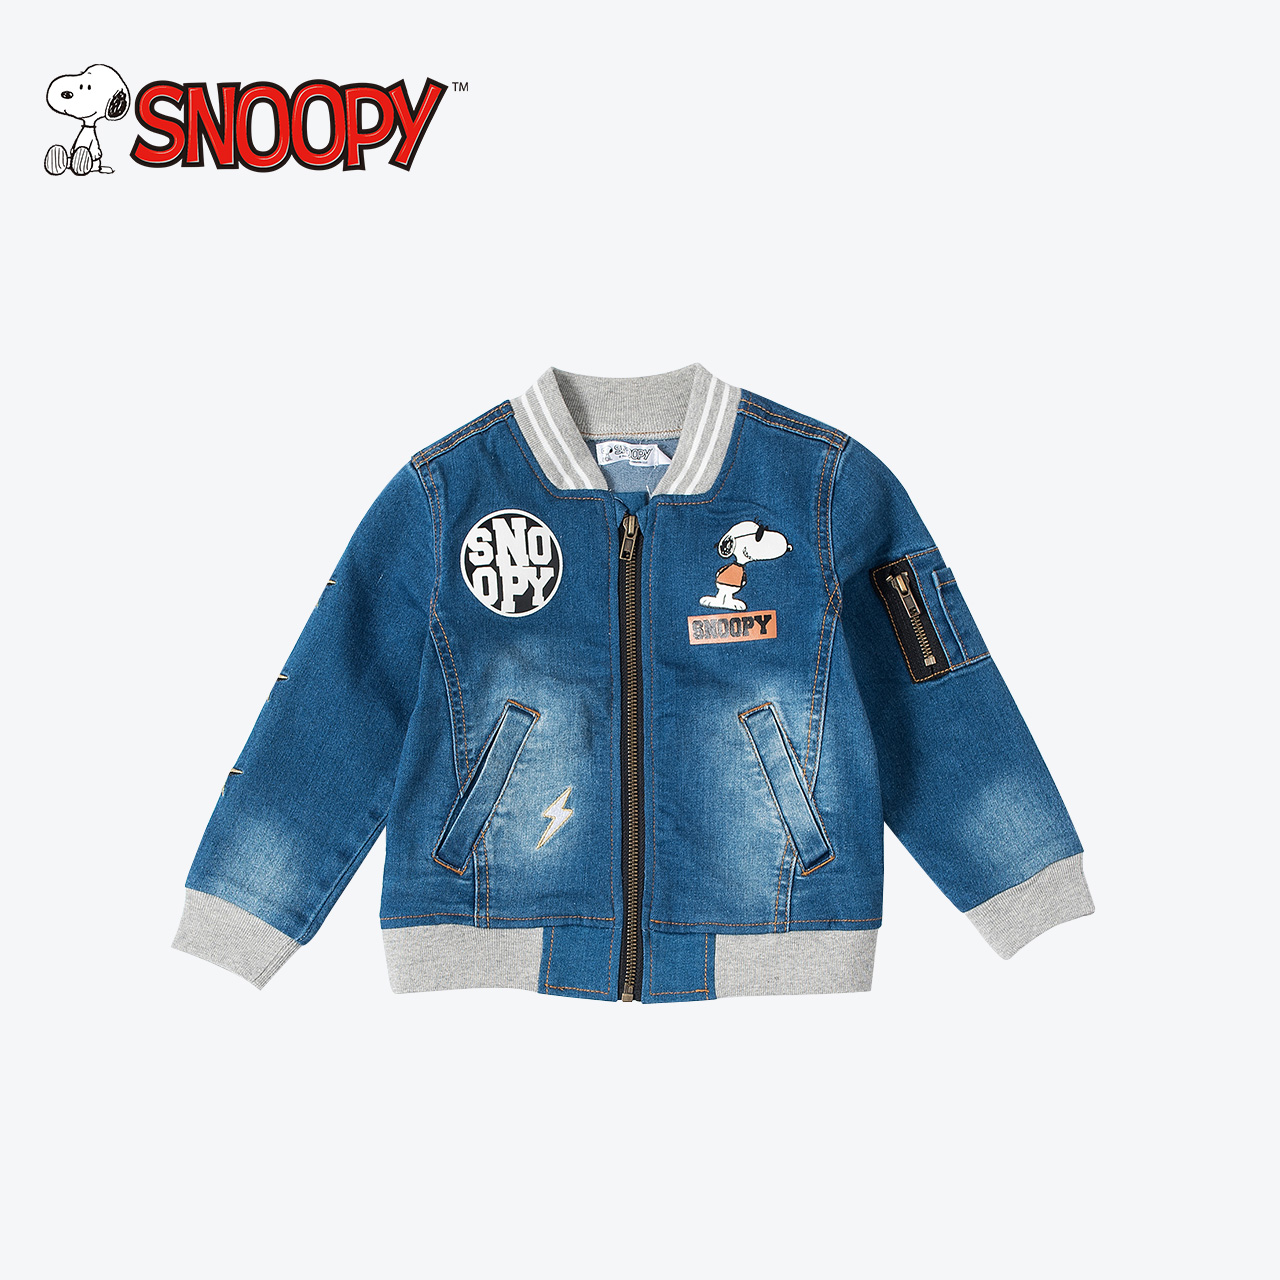 Snoopy Top Quality Spring Baby Boy Jeans Coats Clothes Children Clothing Kids Outwear Cartoon Design Kids Denim Jackets Coats<br>